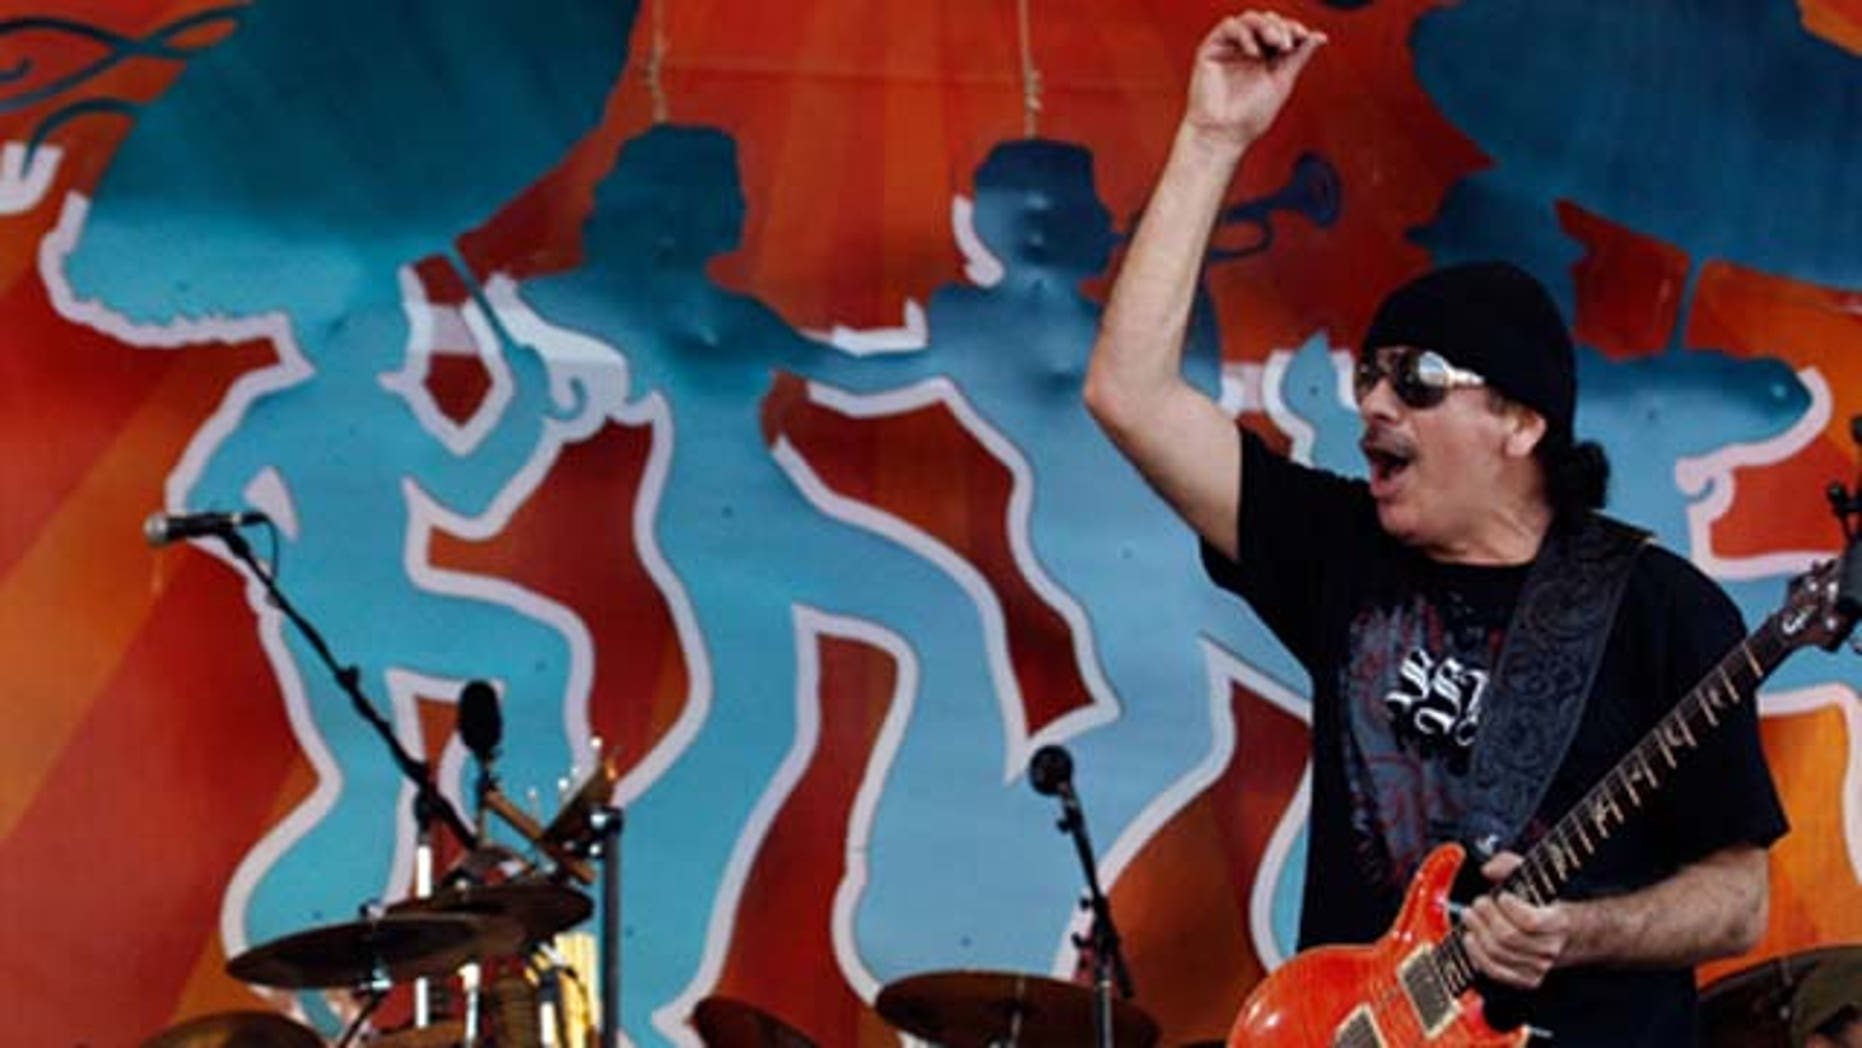 May 04, 2008: Carlos Santana performs during the New Orleans Jazz and Heritage Festival at the Fair Grounds Race Course in New Orleans, LA.